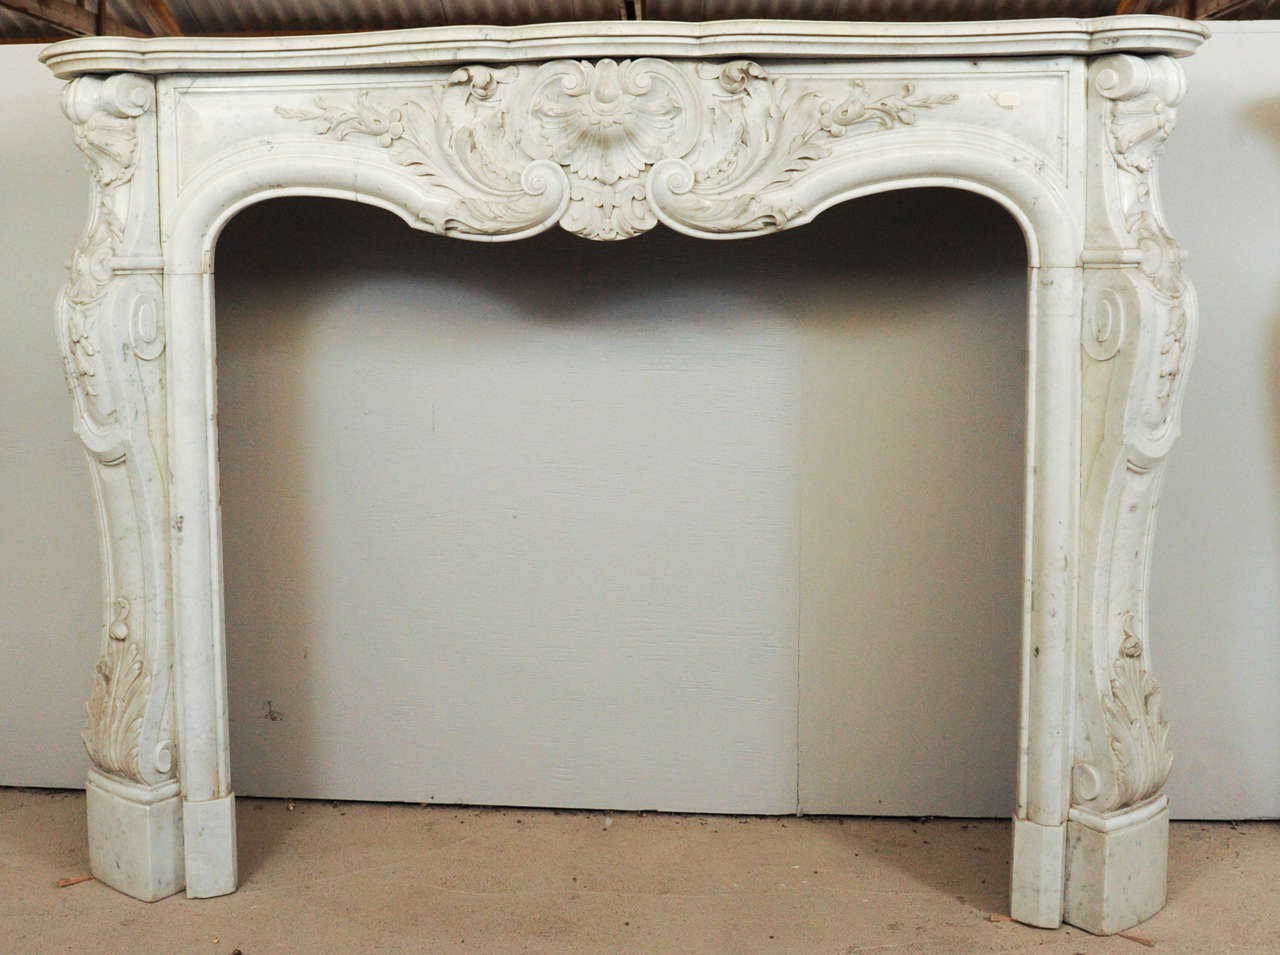 Mid 19th century french rococo white carrara marble fireplace mantel piece for sale at 1stdibs - Fireplace mantel piece ...